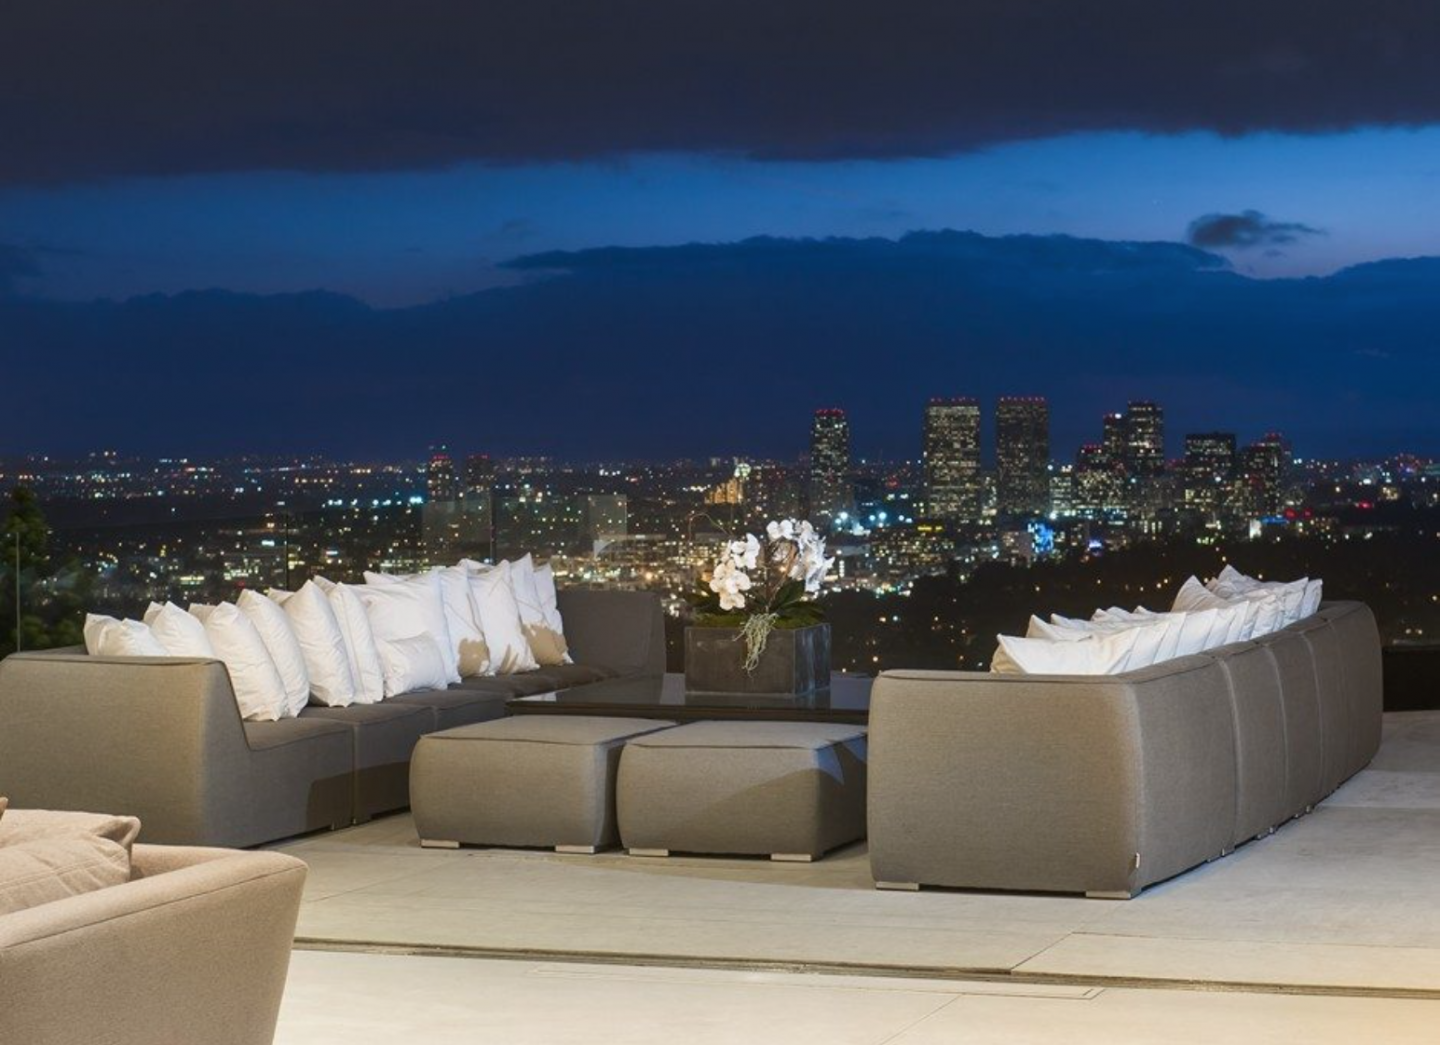 Patio view of Los Angeles at night